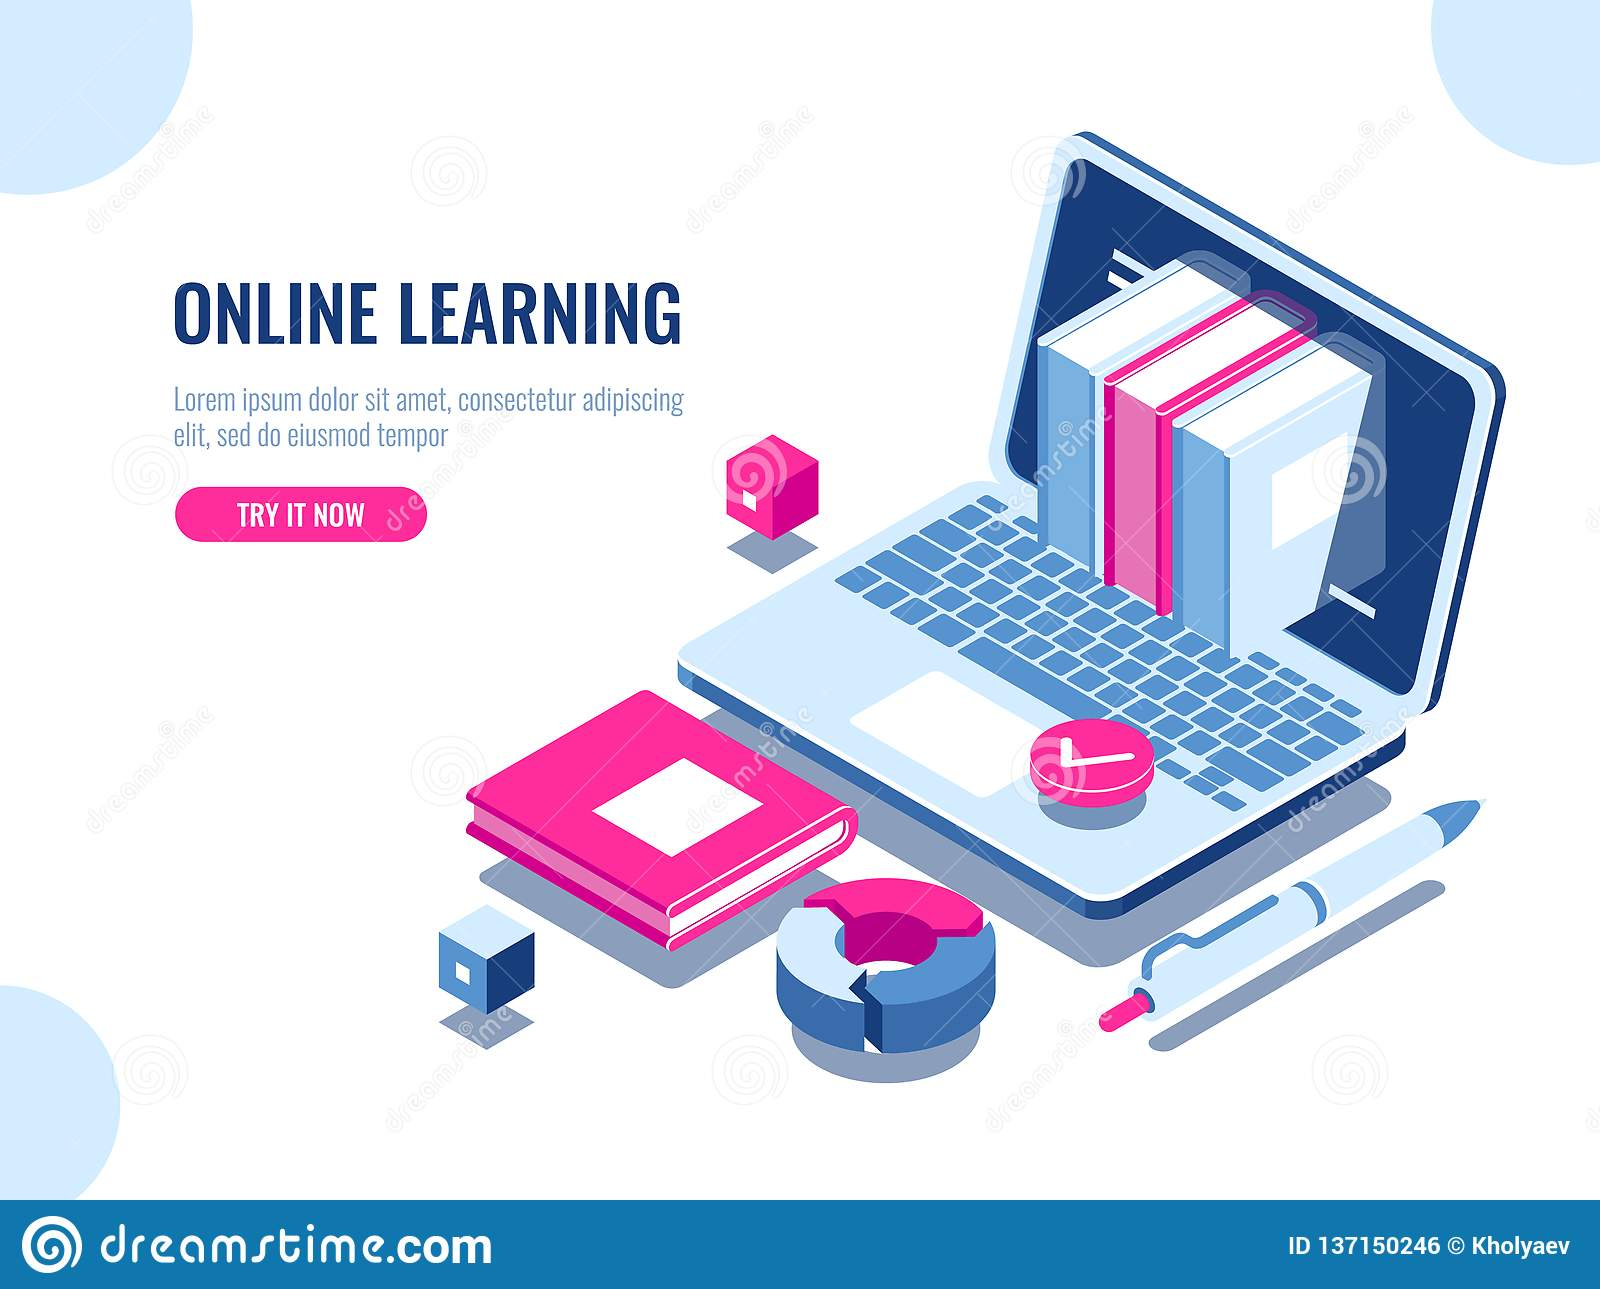 Catalog of online courses isometric icon, online education, internet learning, laptop with book on screen, seo